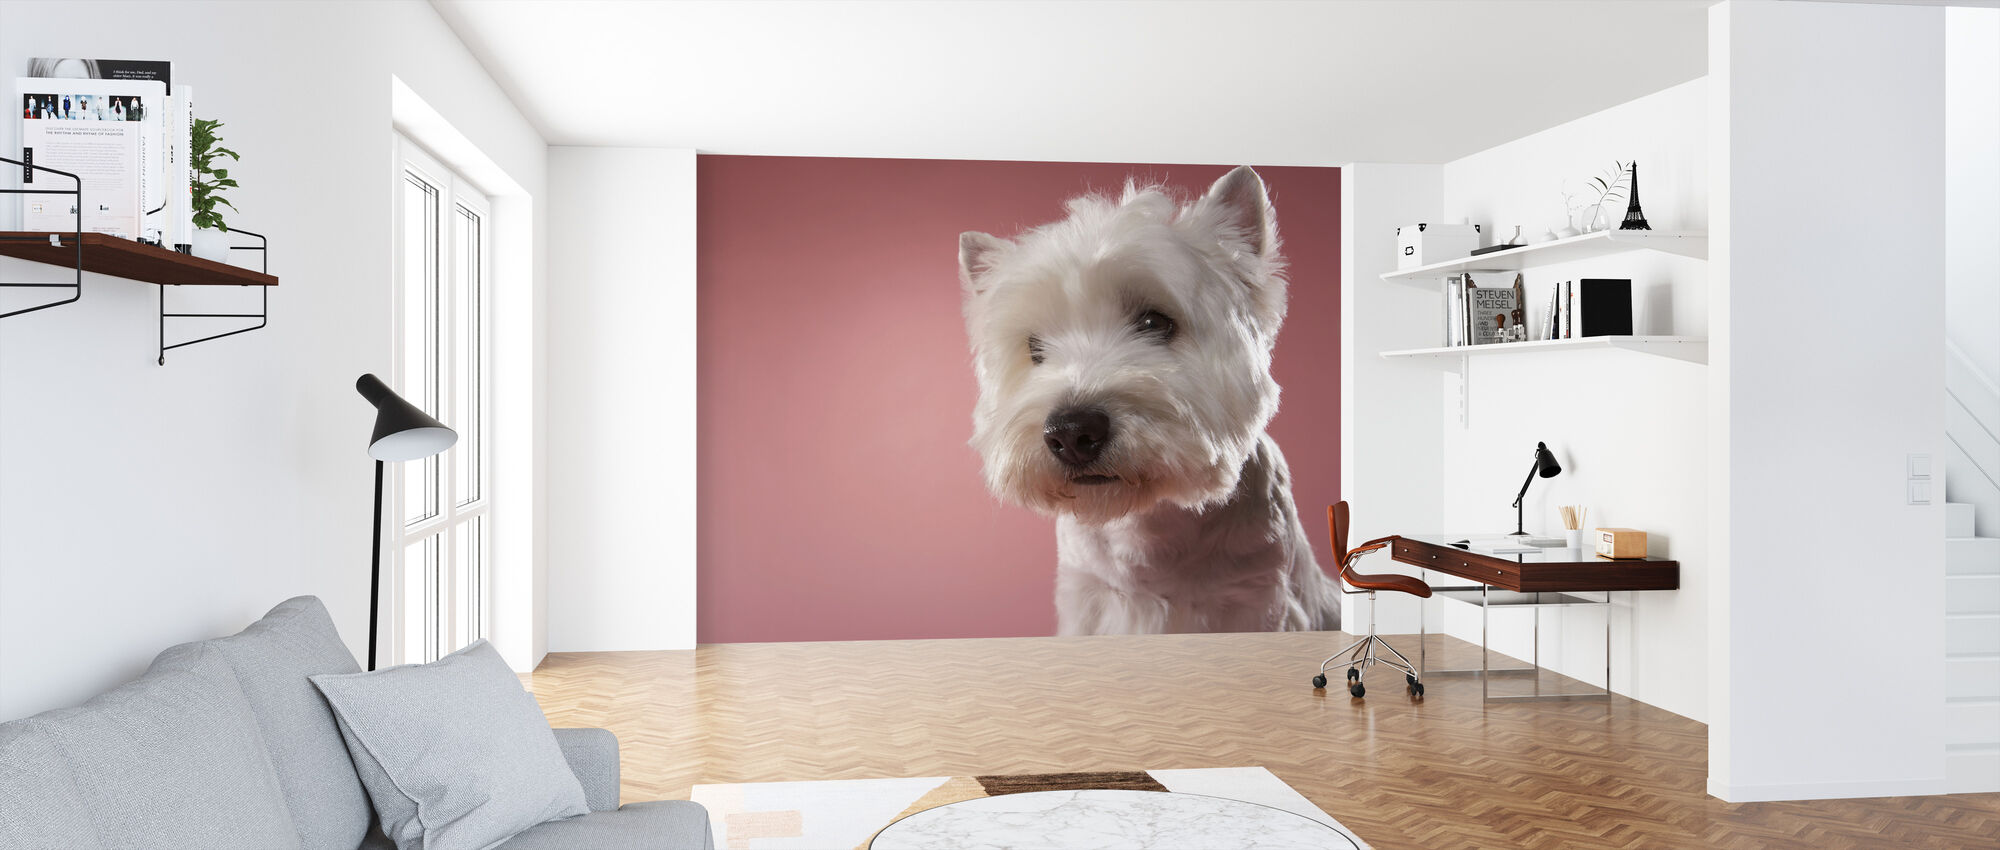 West Highland Terrier - Wallpaper - Office